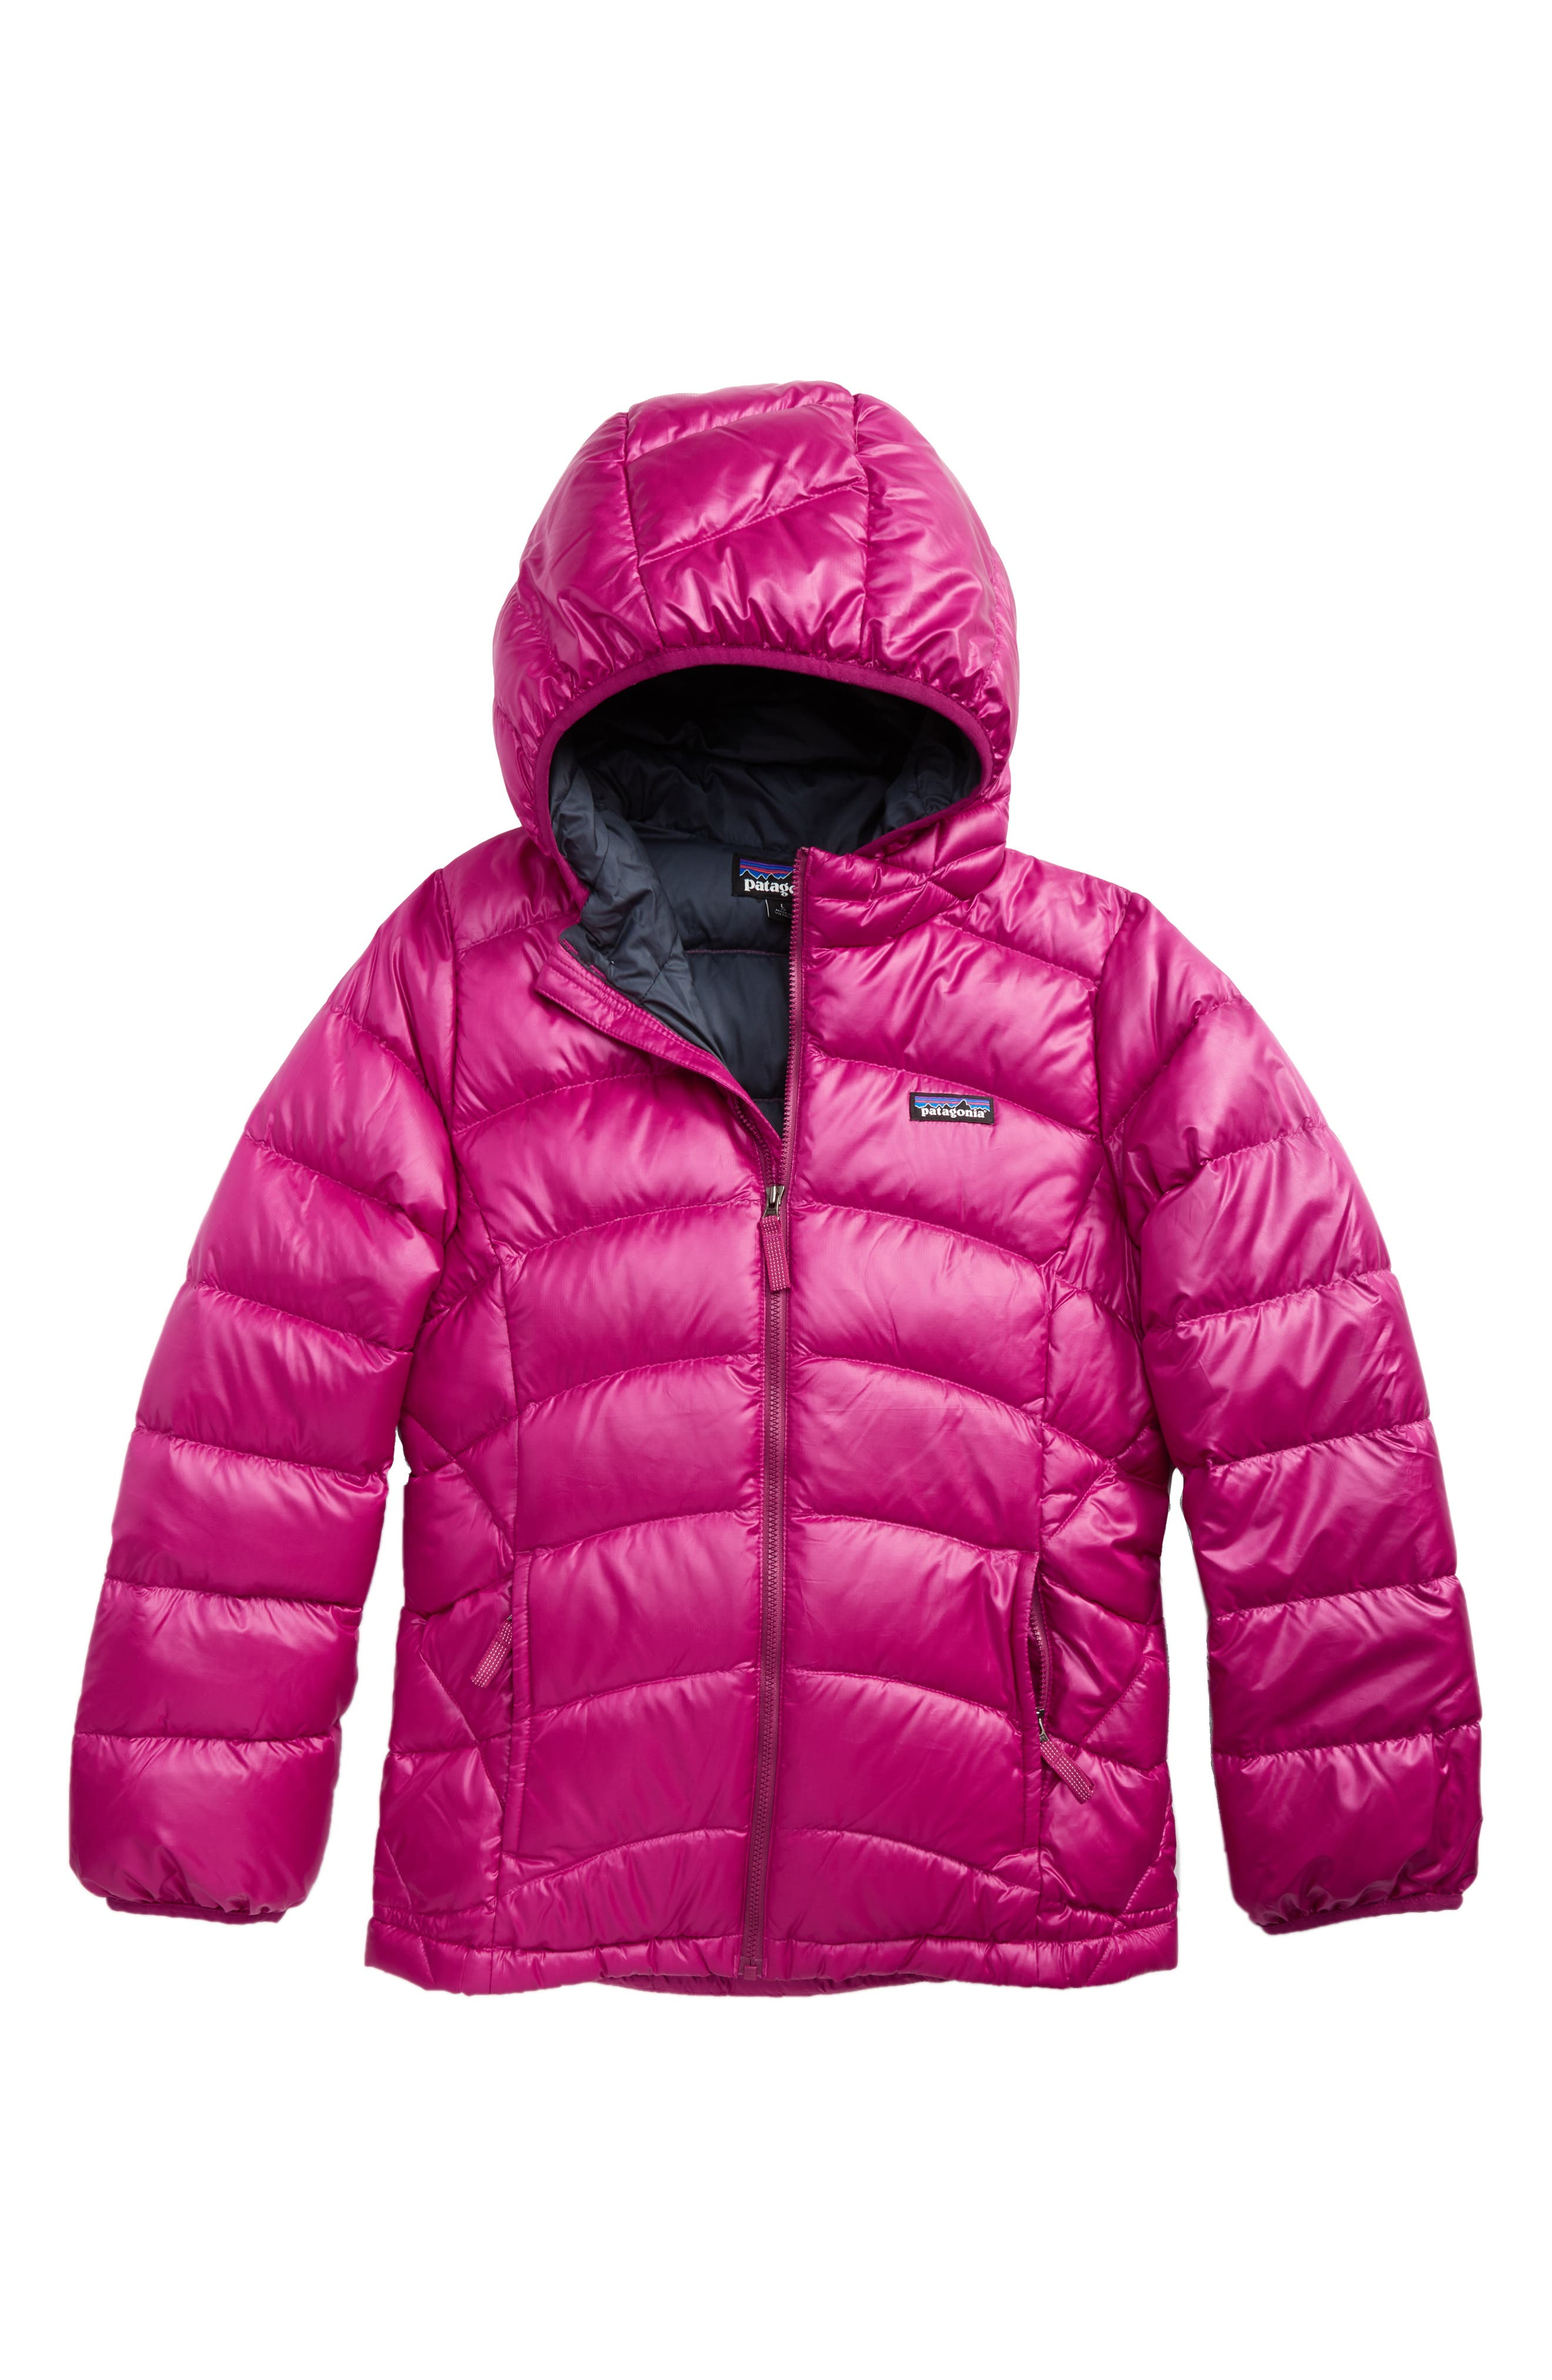 Main Image - Patagonia Hi-Loft Down Sweater Hooded Jacket (Little Girls & Big Girls)